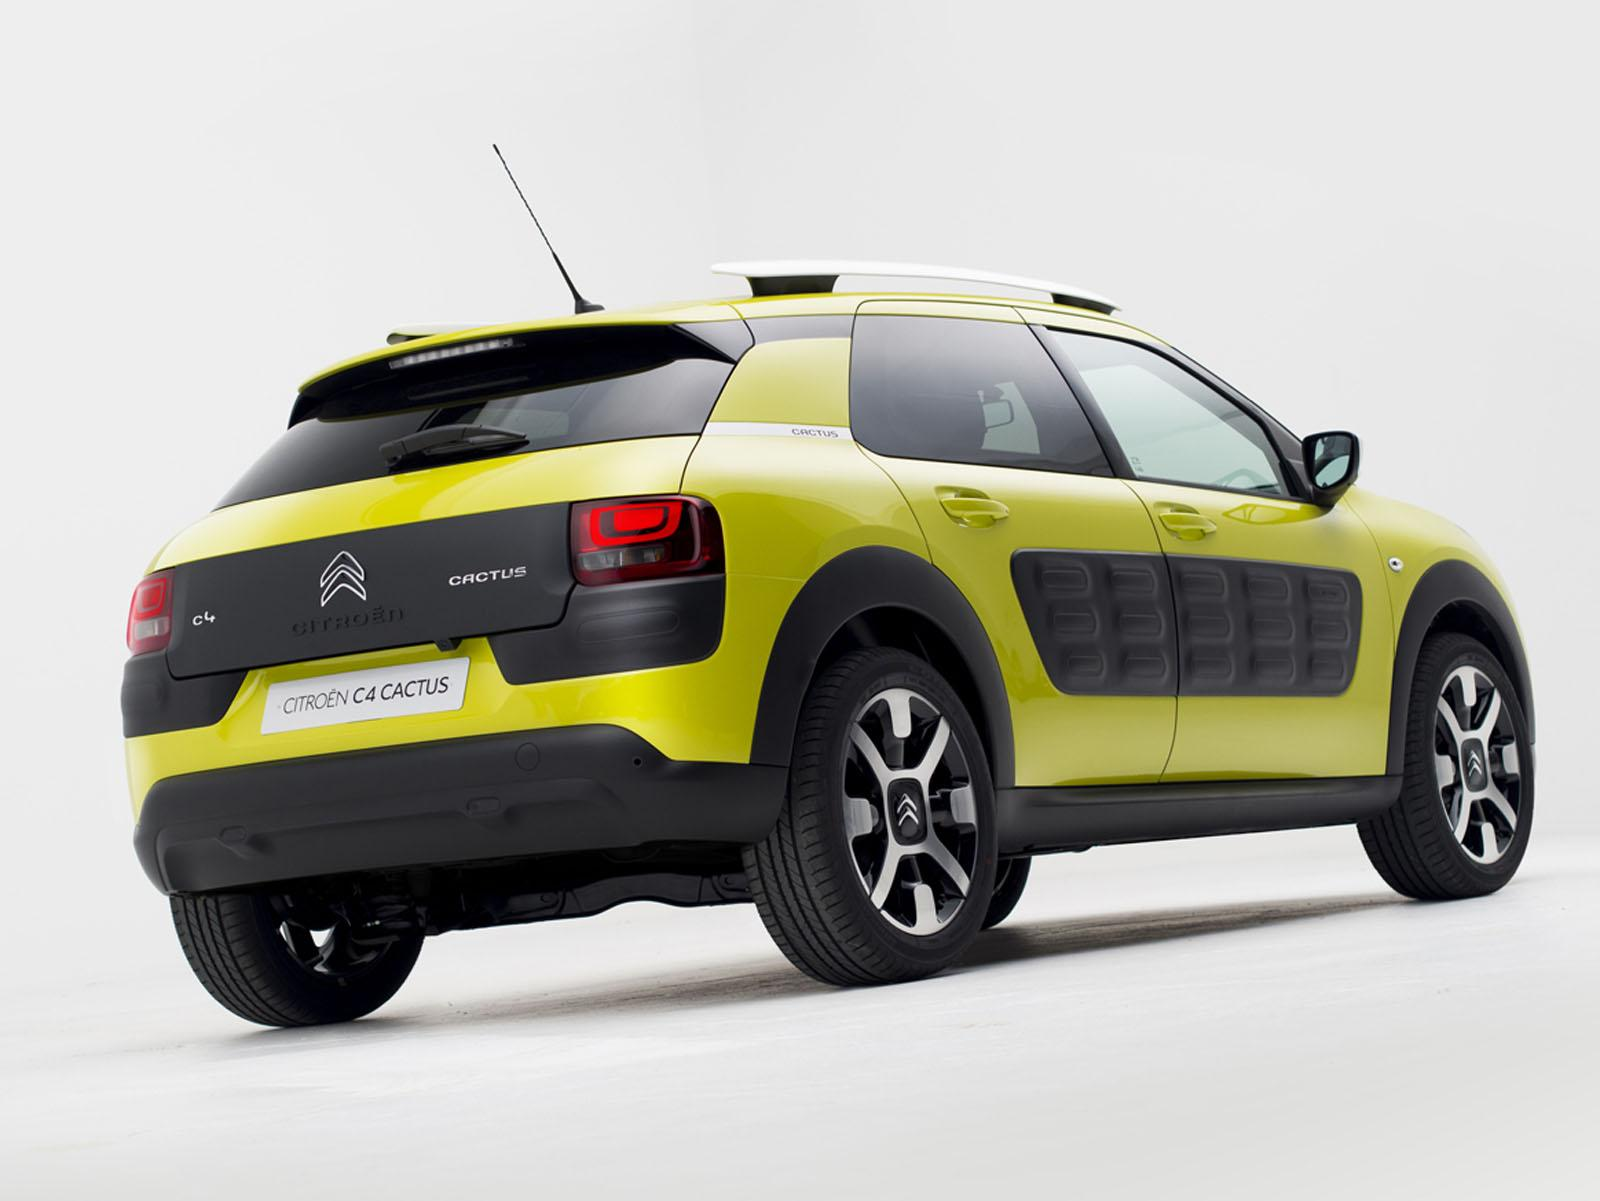 citroen c4 cactus unveiled with roof mounted airbag. Black Bedroom Furniture Sets. Home Design Ideas